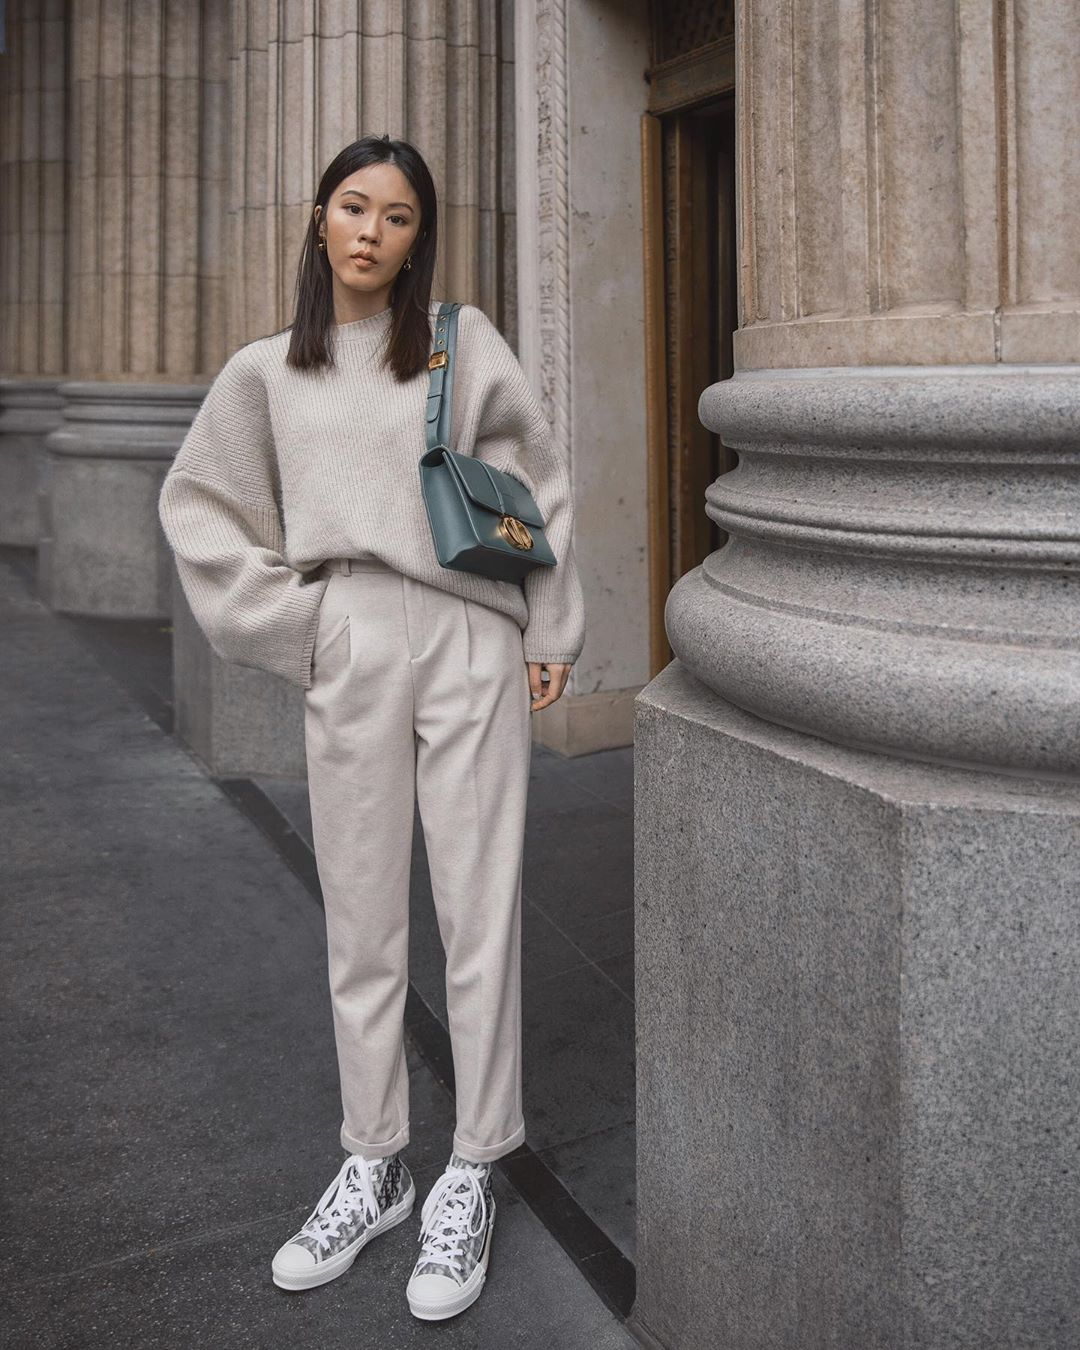 The Cozy All-Neutral Outfit We Can't Stop Thinking About